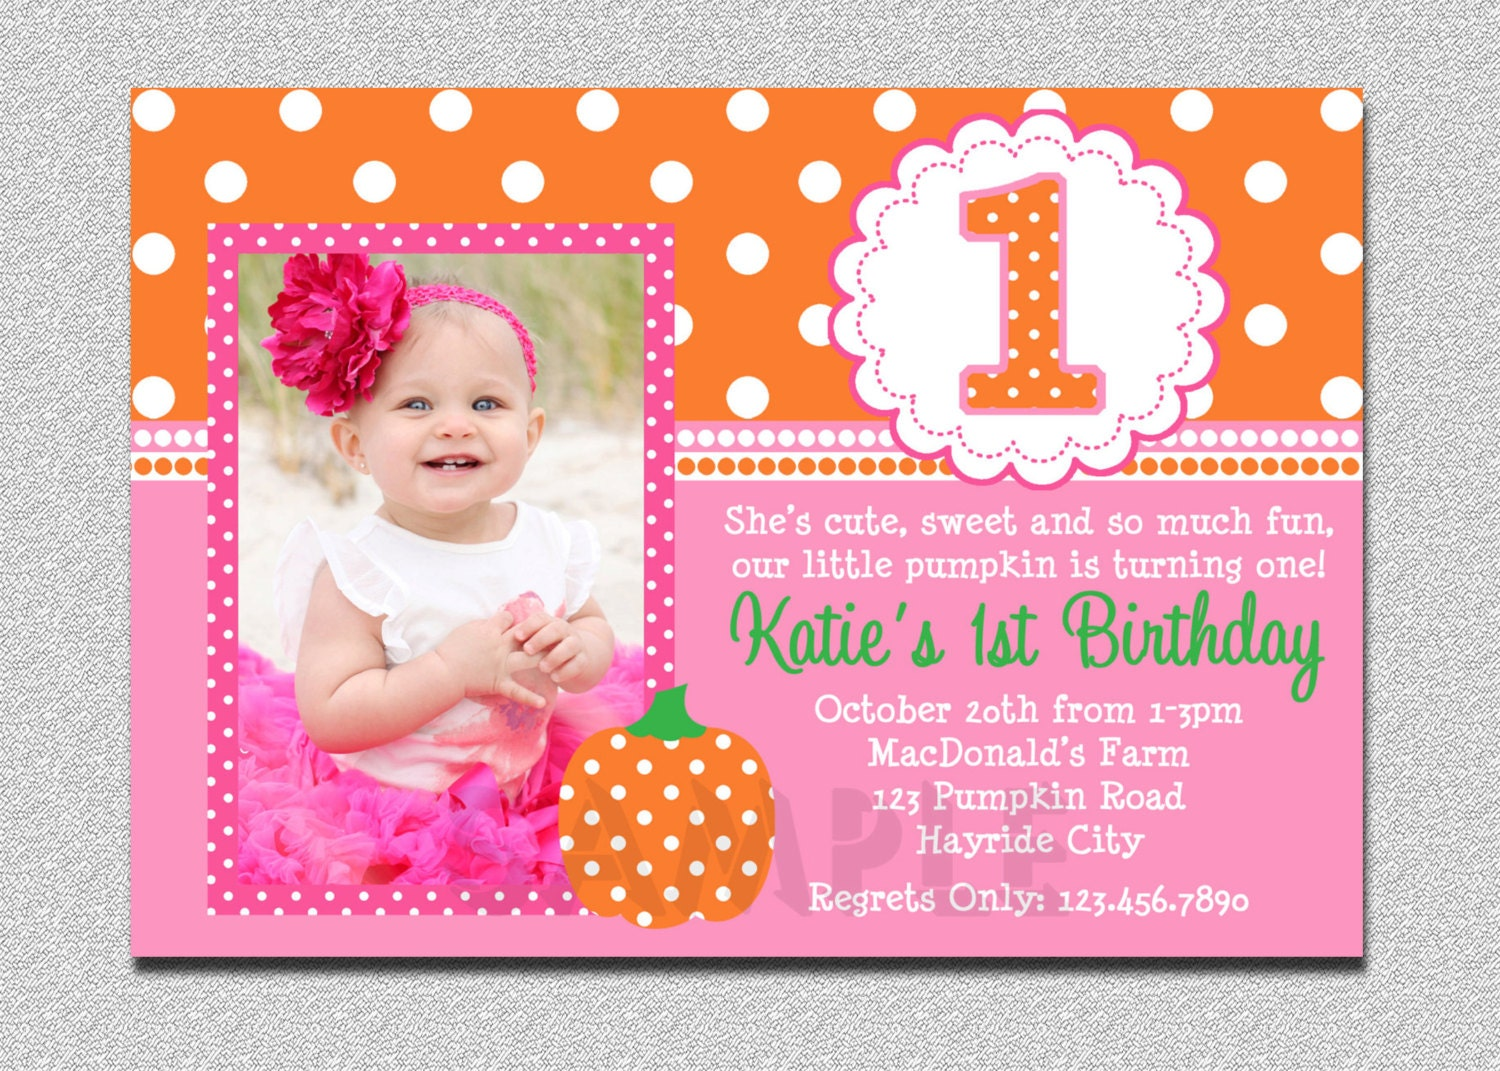 1St Birthday Invites is an amazing ideas you had to choose for invitation design